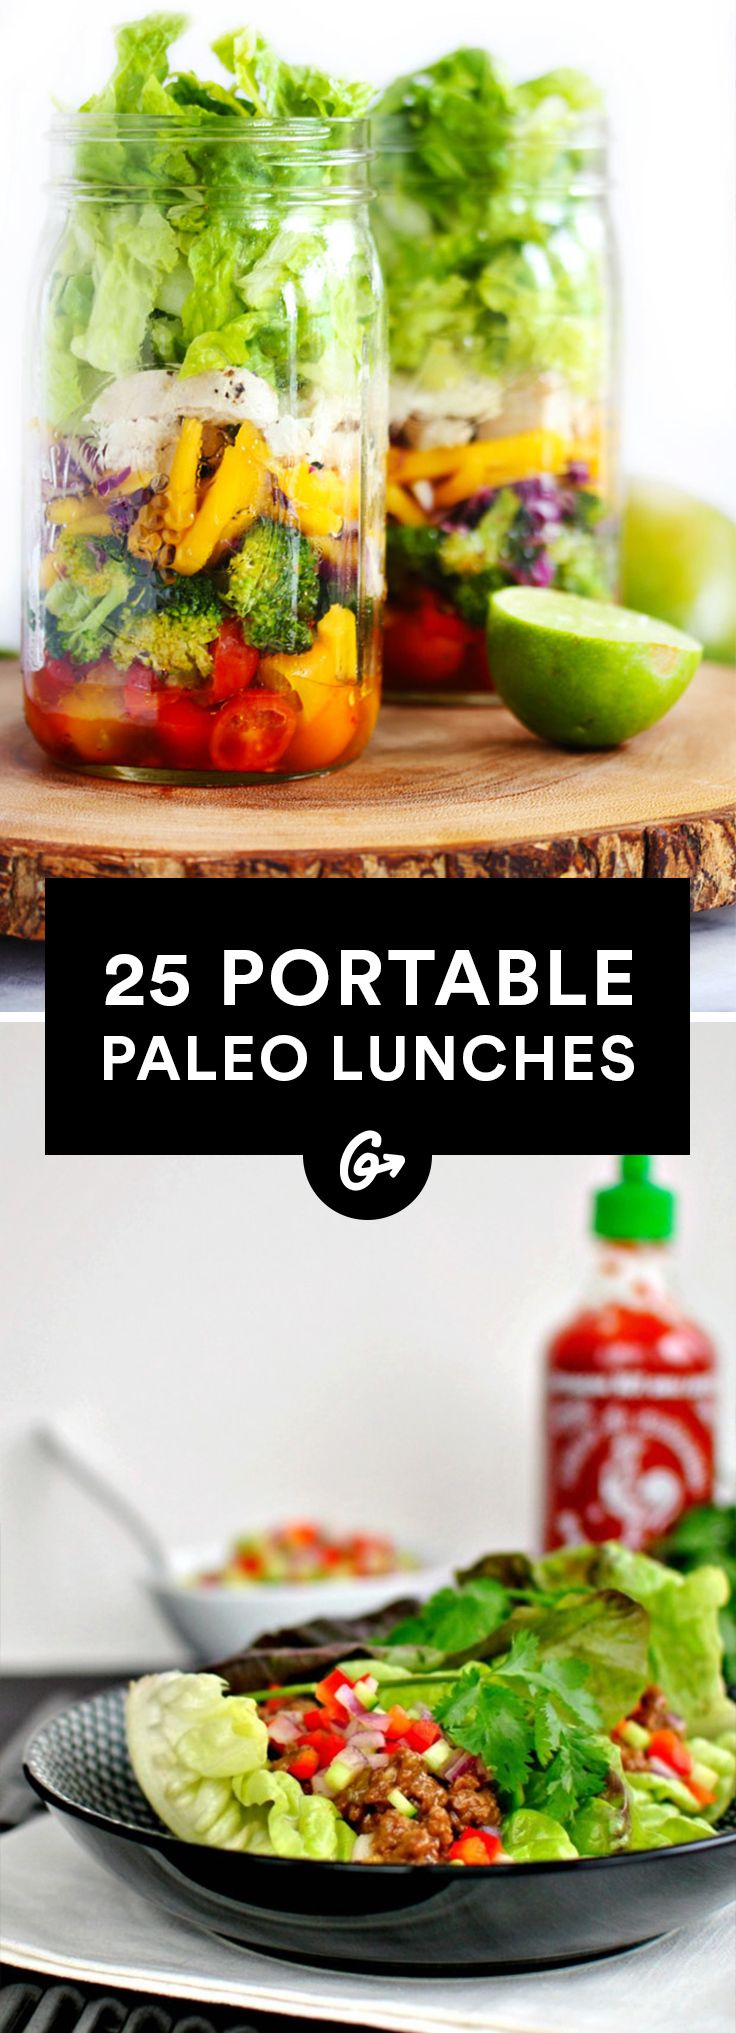 25 Paleo Lunches to Brown Bag to Work #paleo #lunch #recipes http://greatist.com/eat/paleo-lunch-recipes